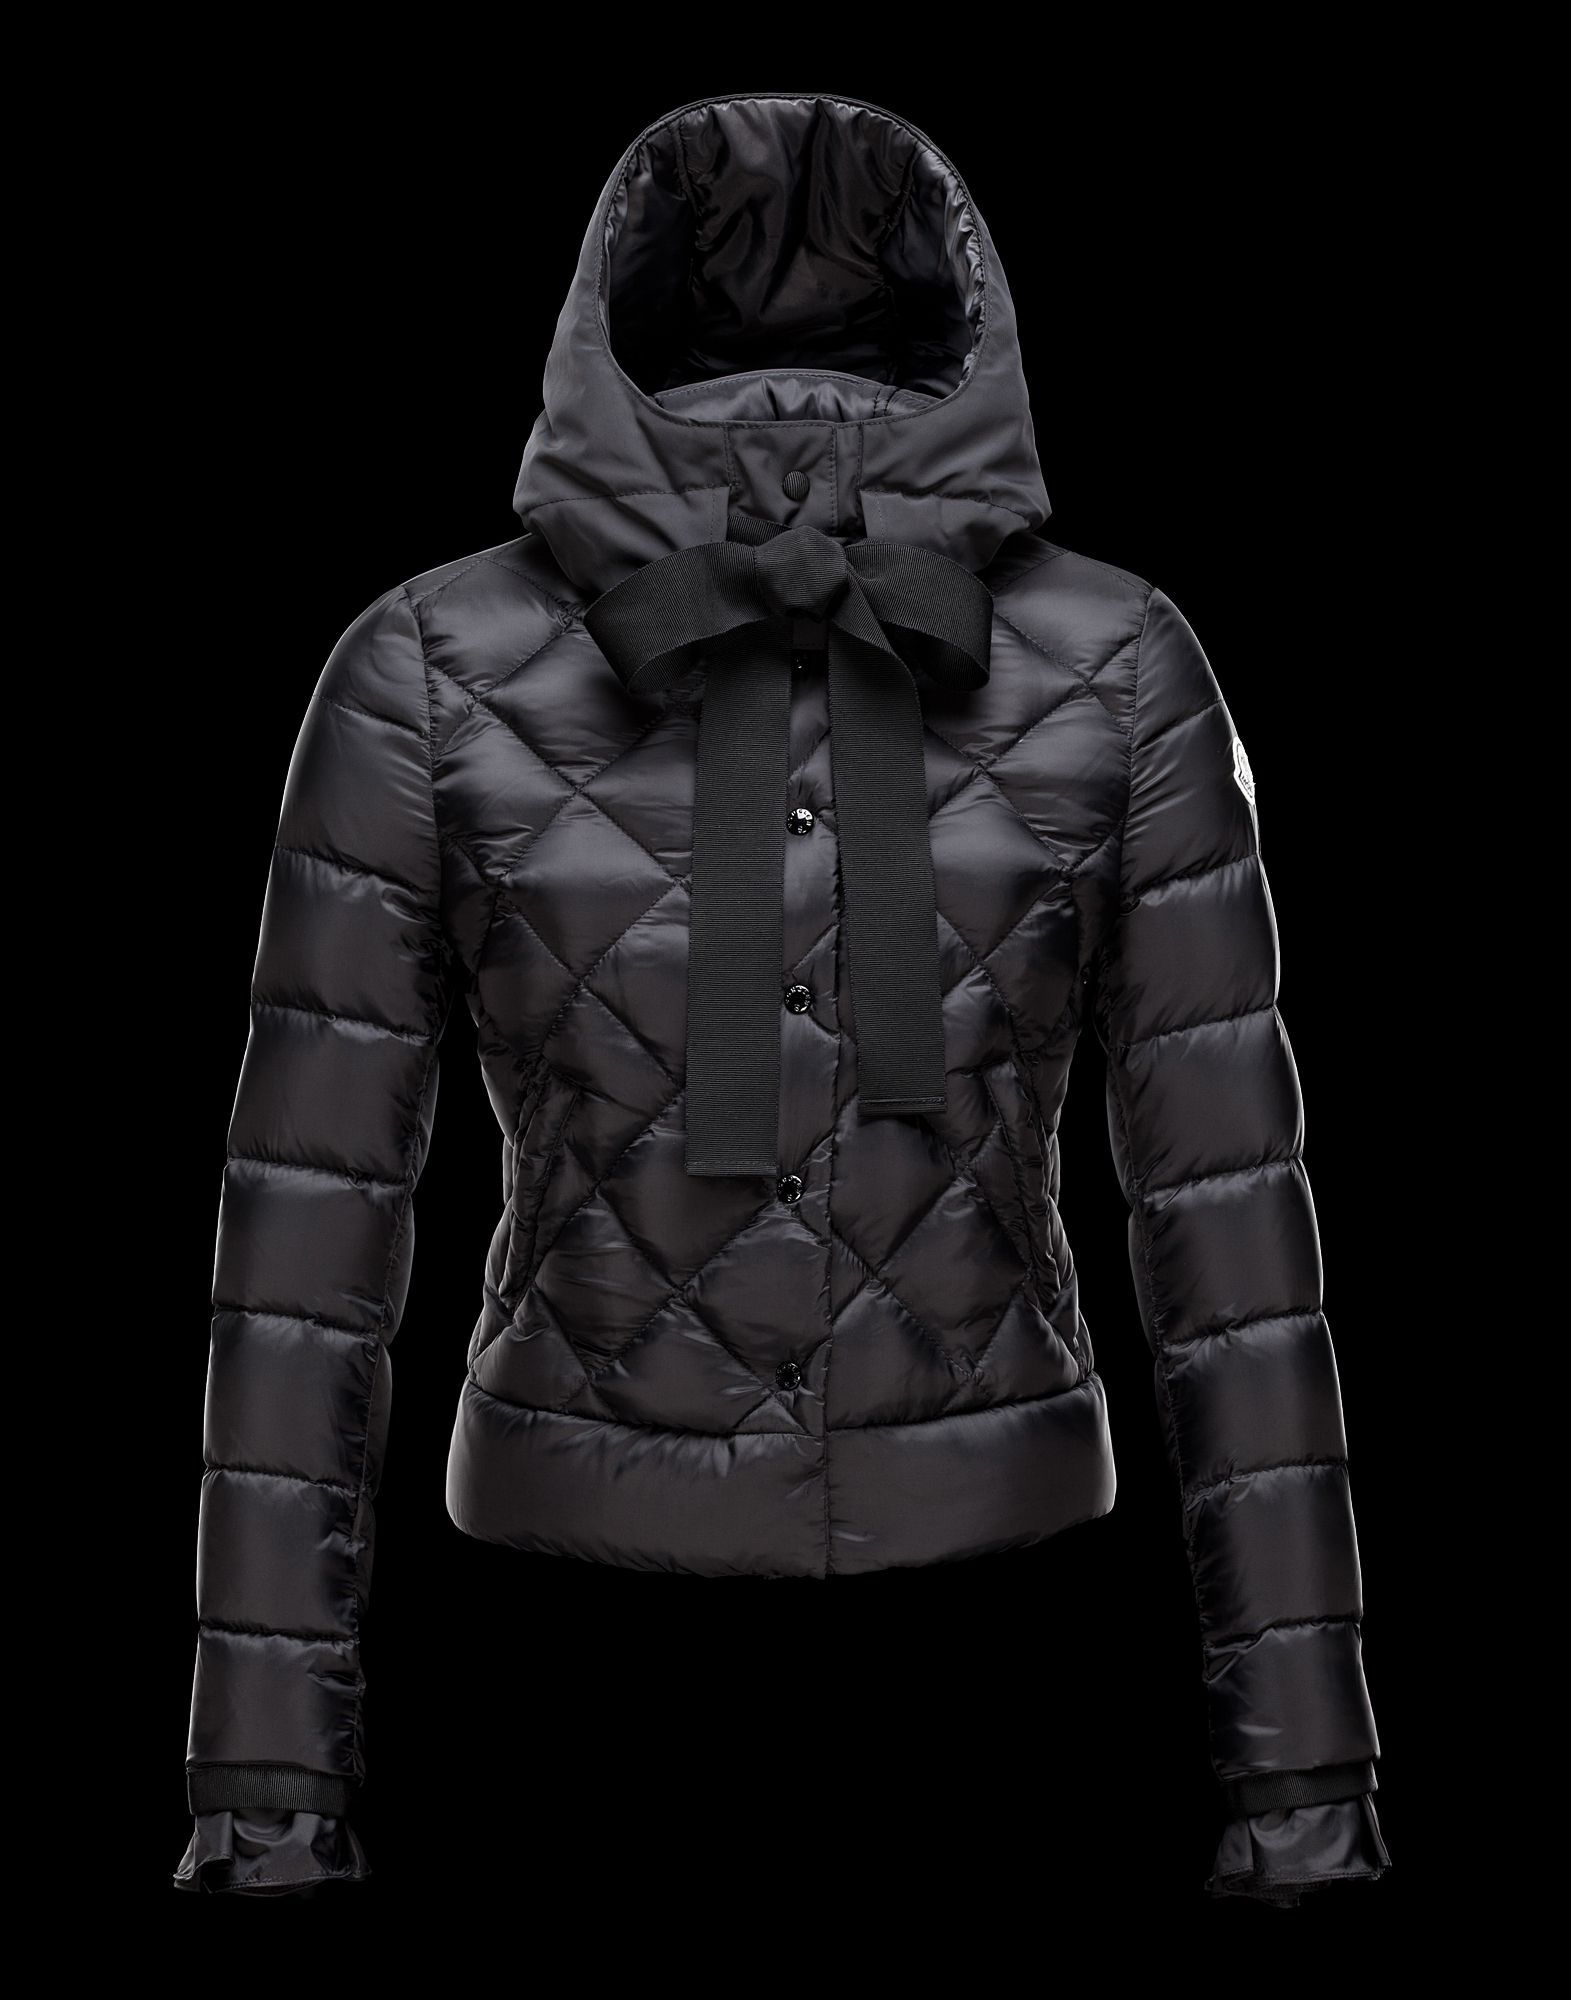 moncler@#$99 on | Winter cool in 2019 | Moncler, Winter